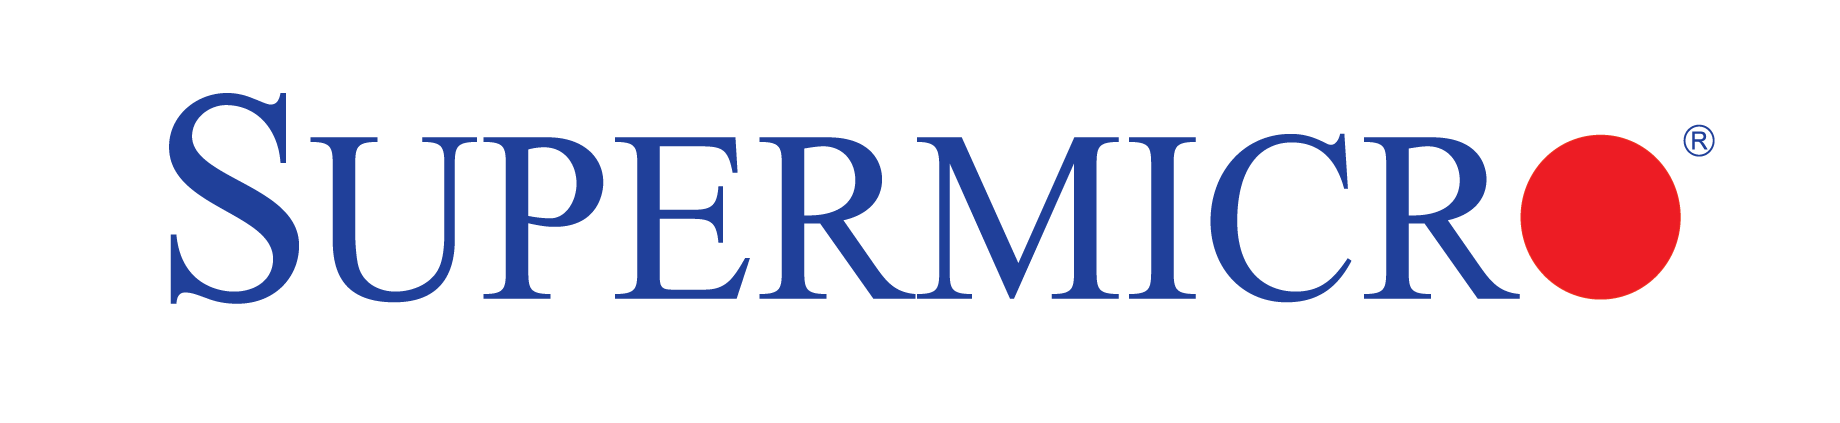 supermicro.png-Logo